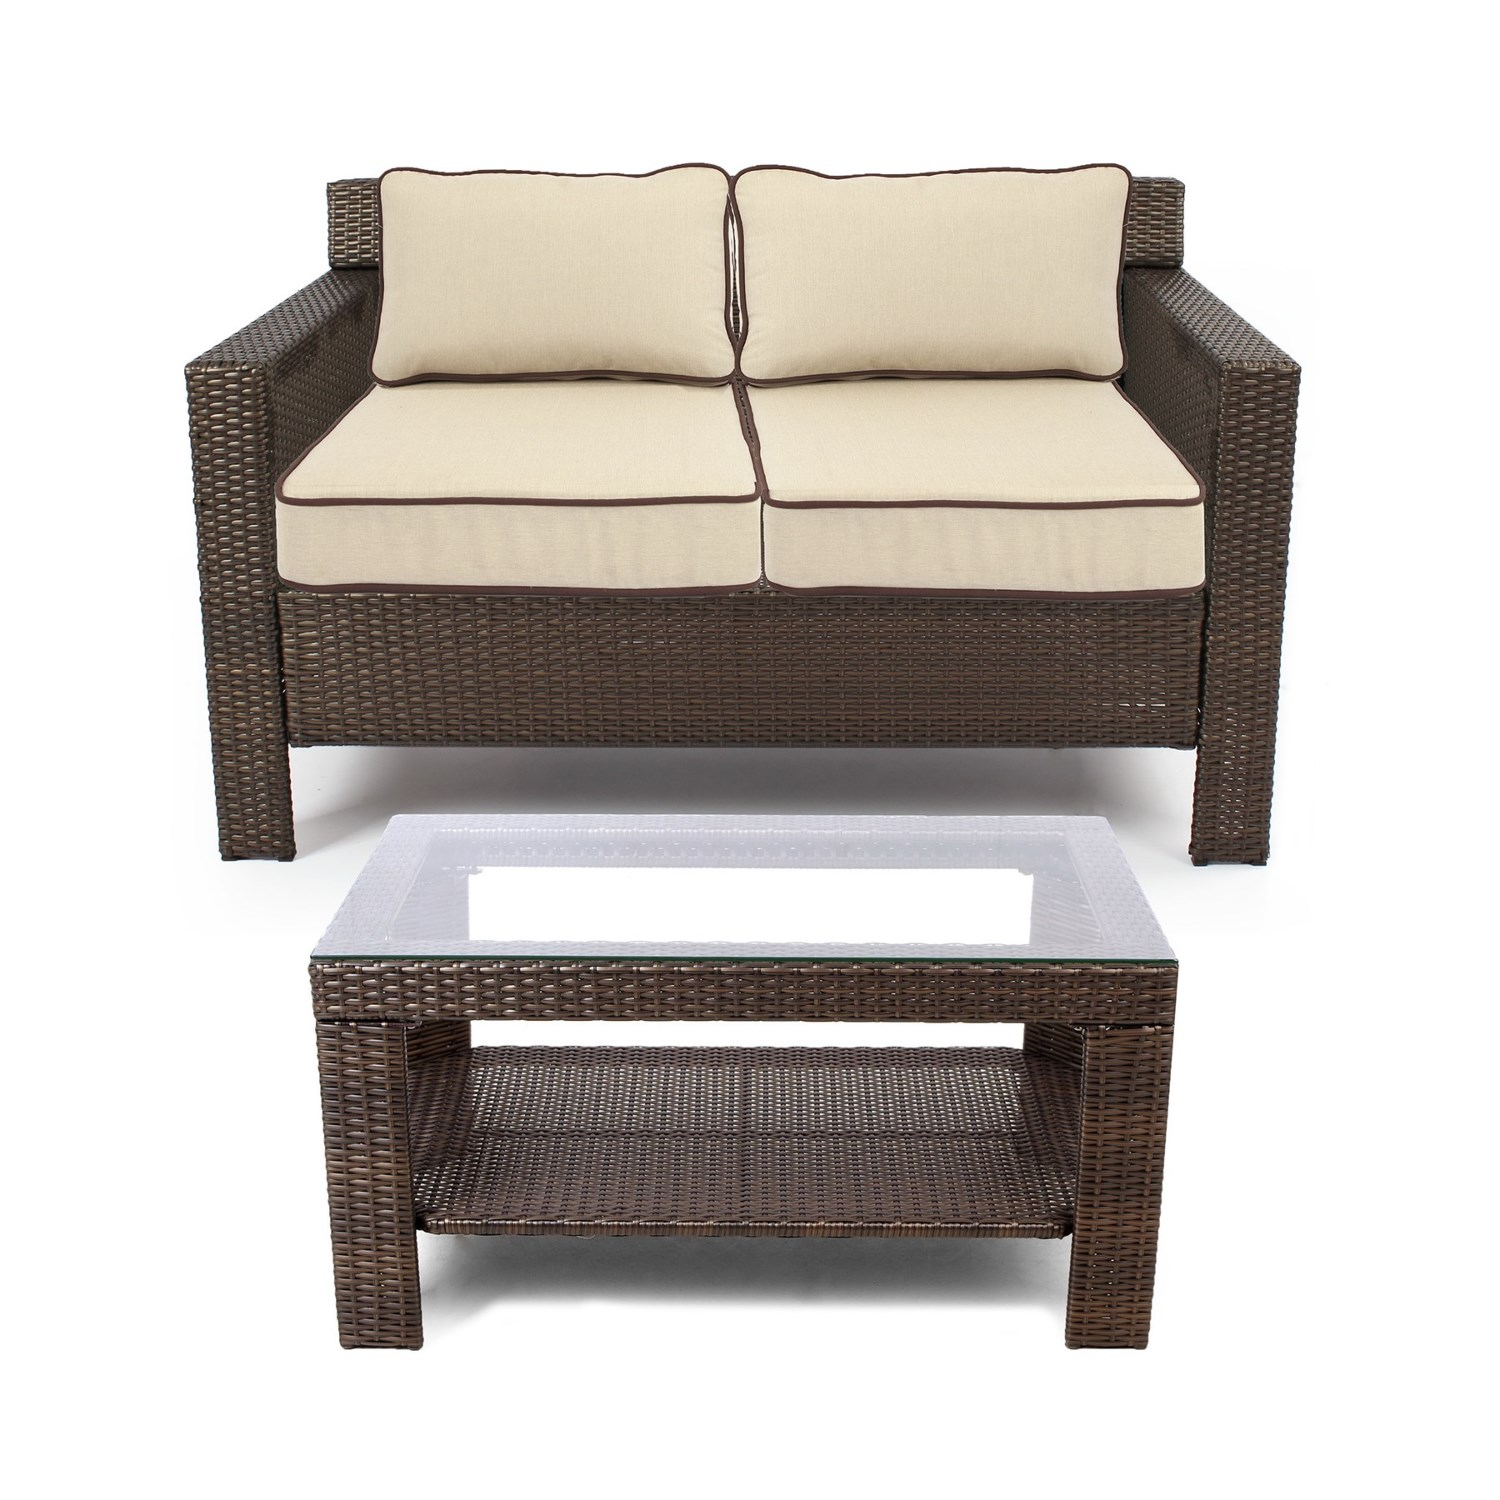 Grand basket company glen cove patio furniture set 5 for Outdoor furniture 5 piece